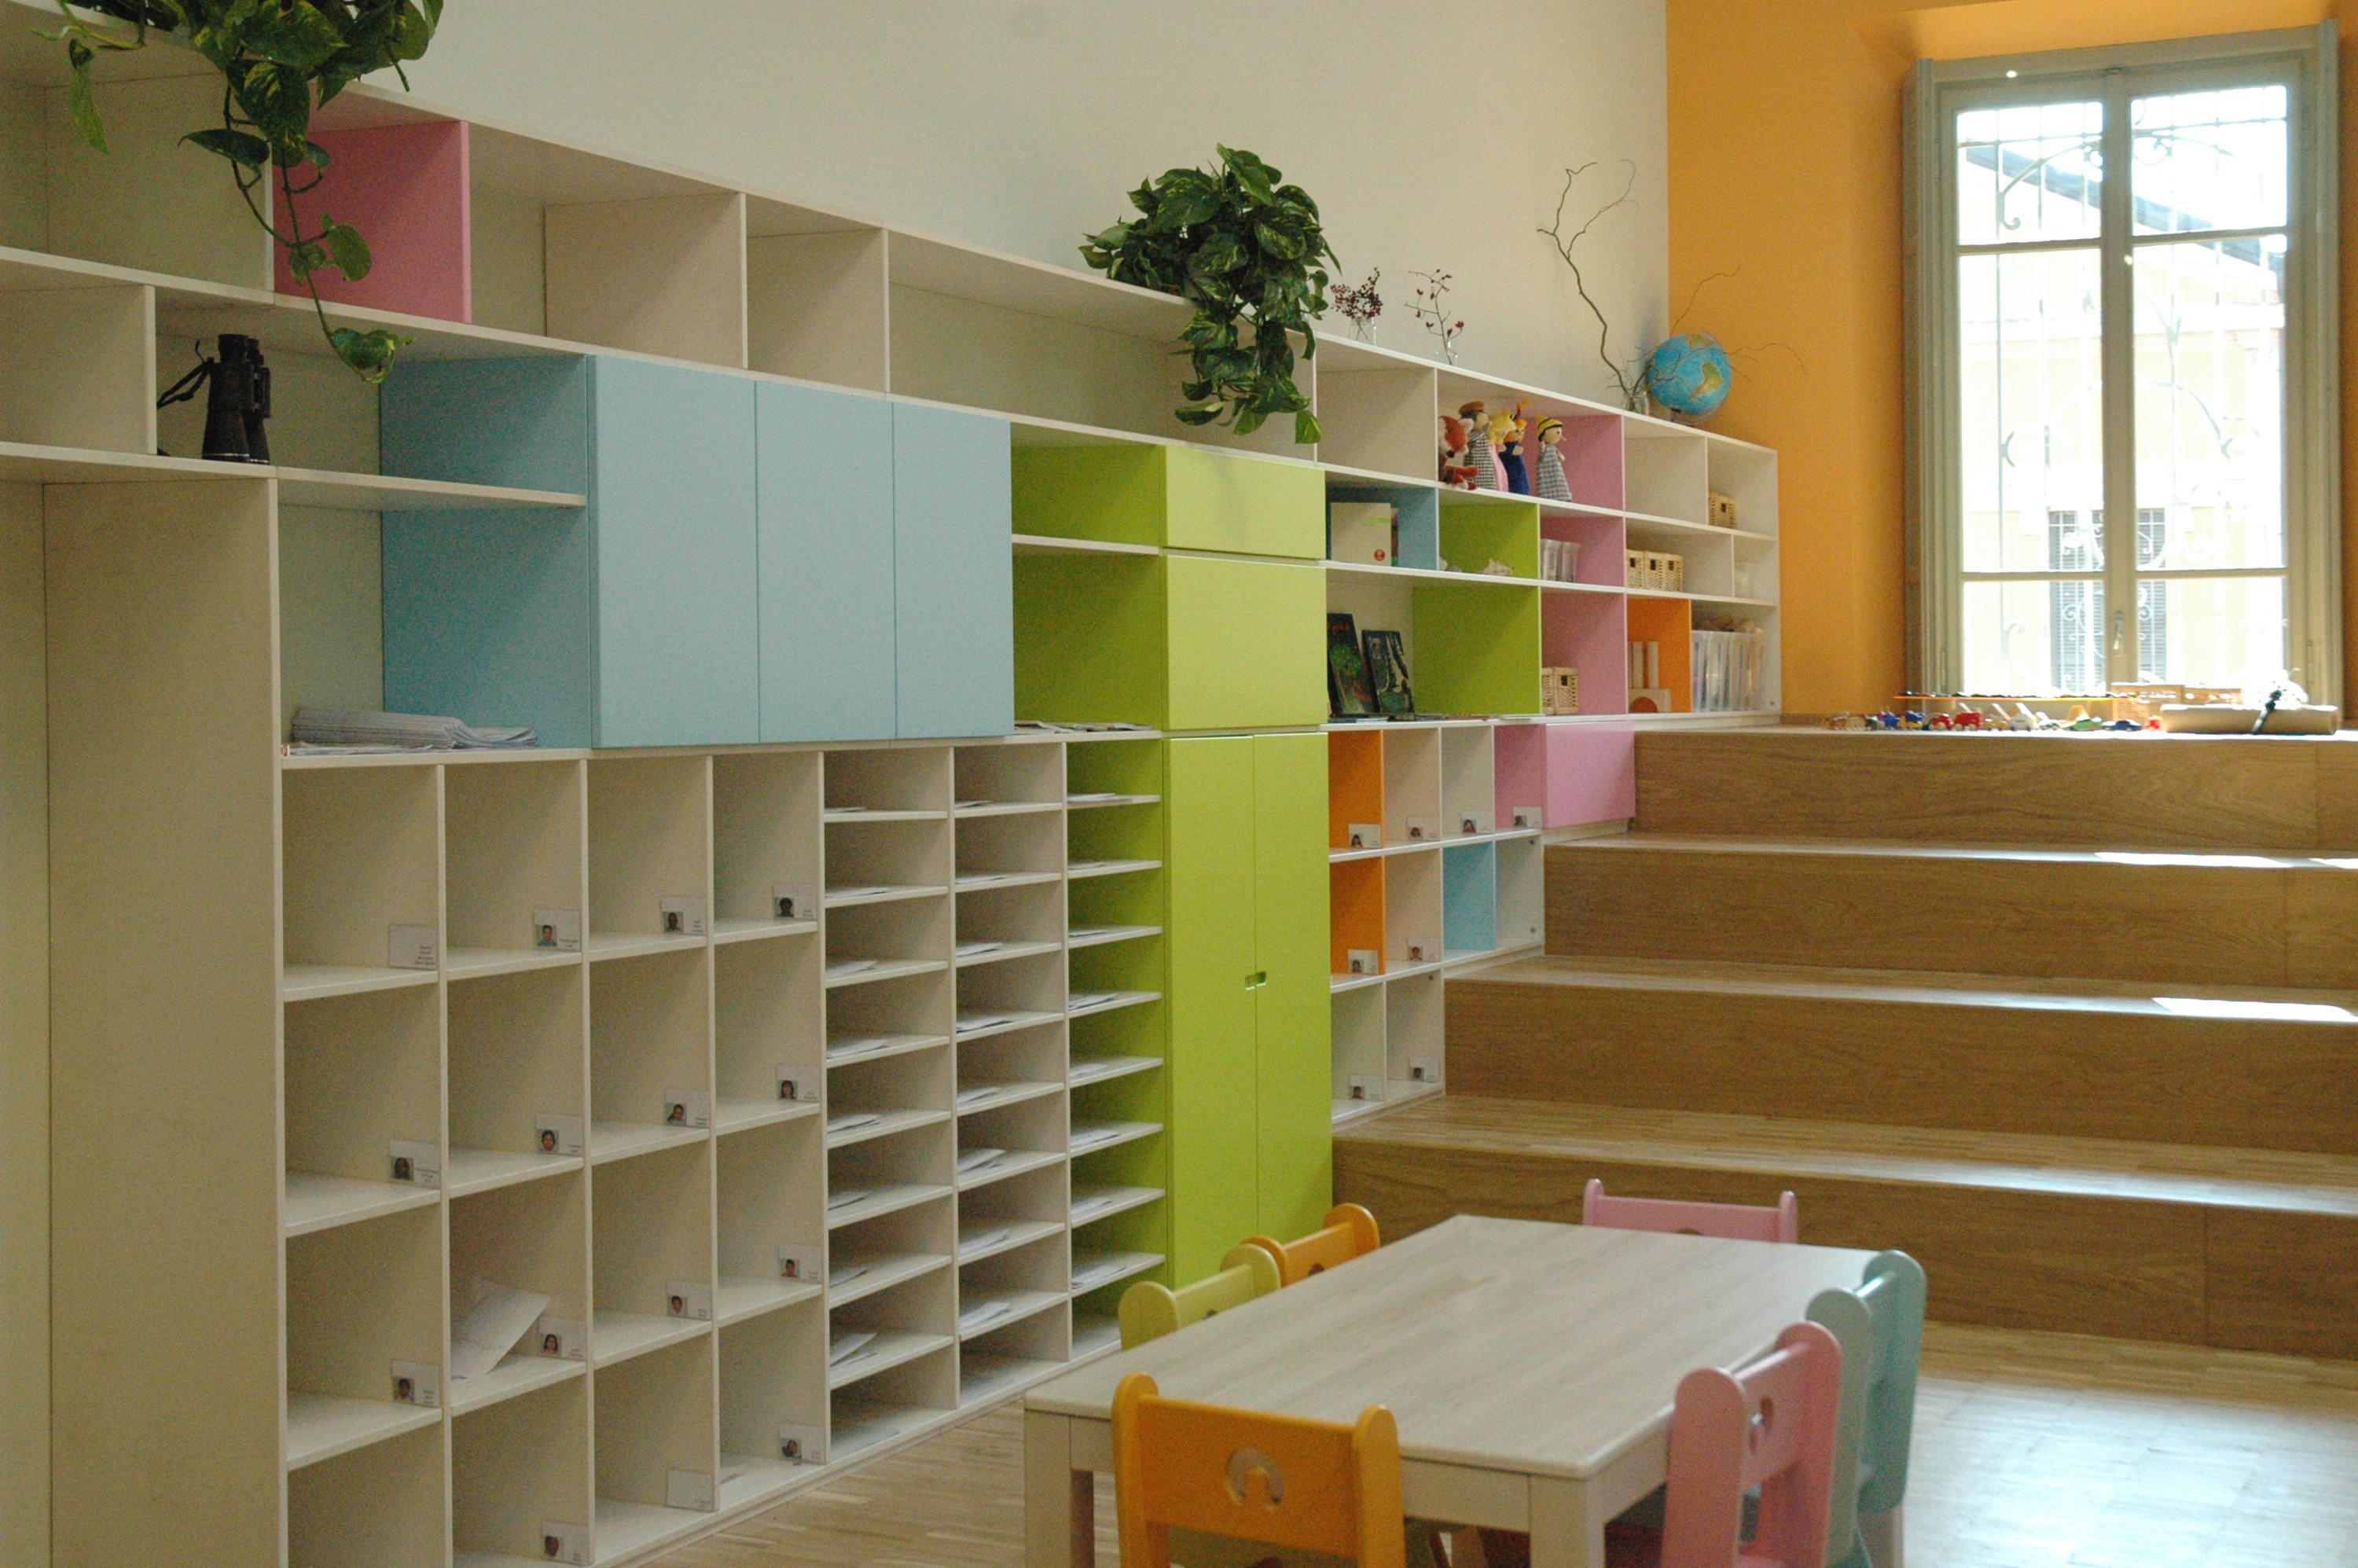 Libreria in linea design by zpz partners play solid librerie e